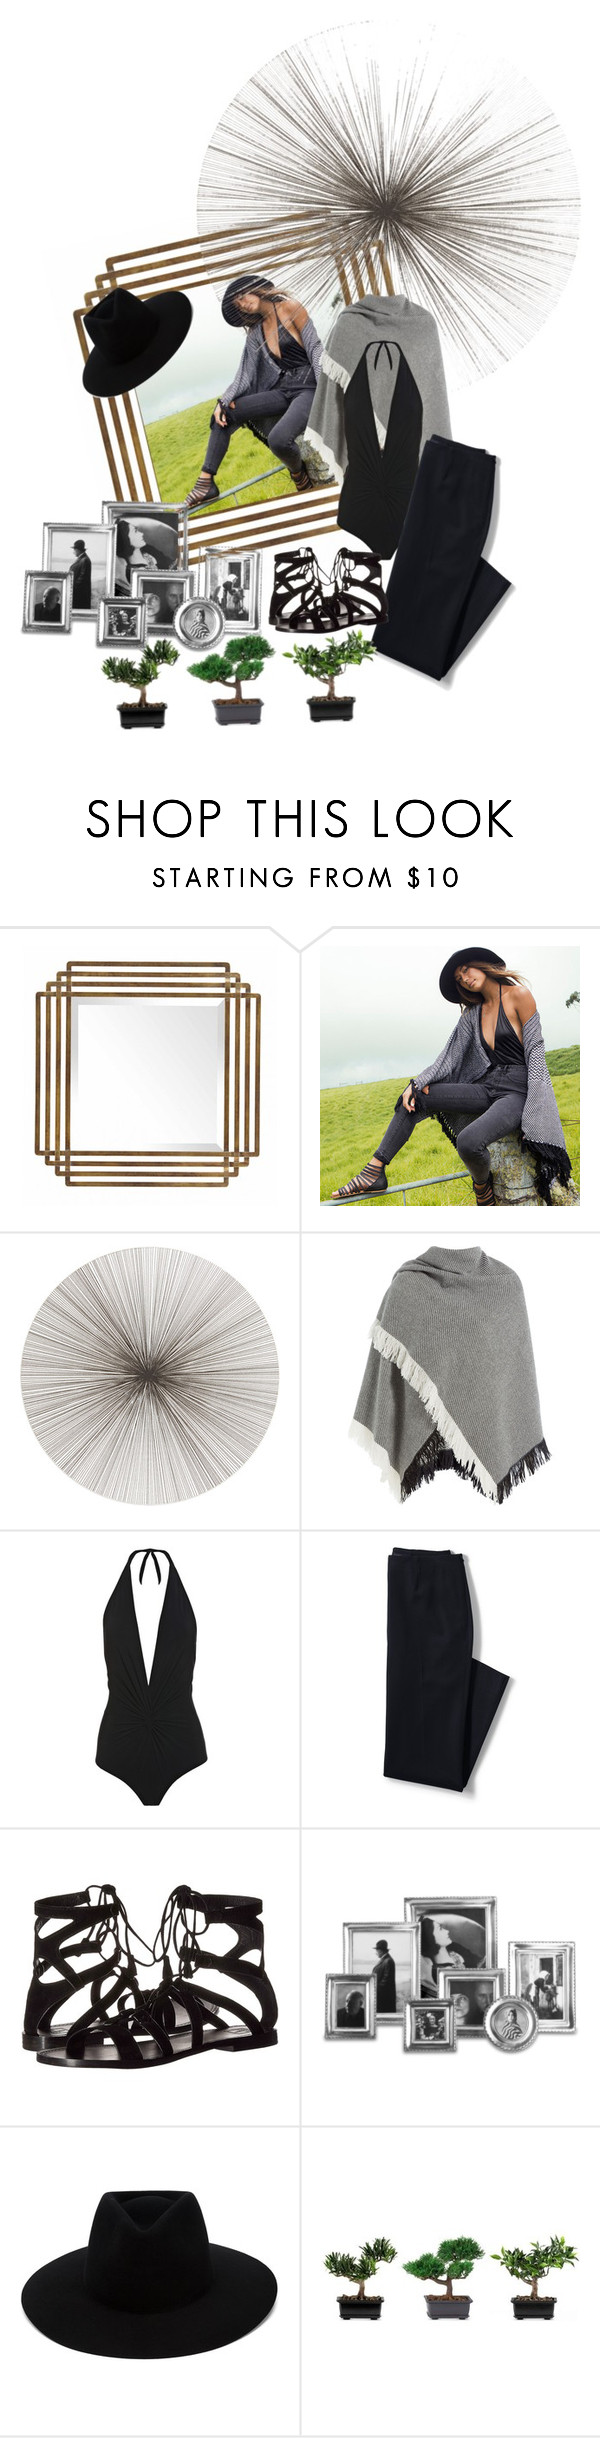 """Playful2"" by meladesigns ❤ liked on Polyvore featuring Billabong, Tisch New York, Burberry, Karla Colletto, Lands' End, Frye, Match, rag & bone, Nearly Natural and playful"